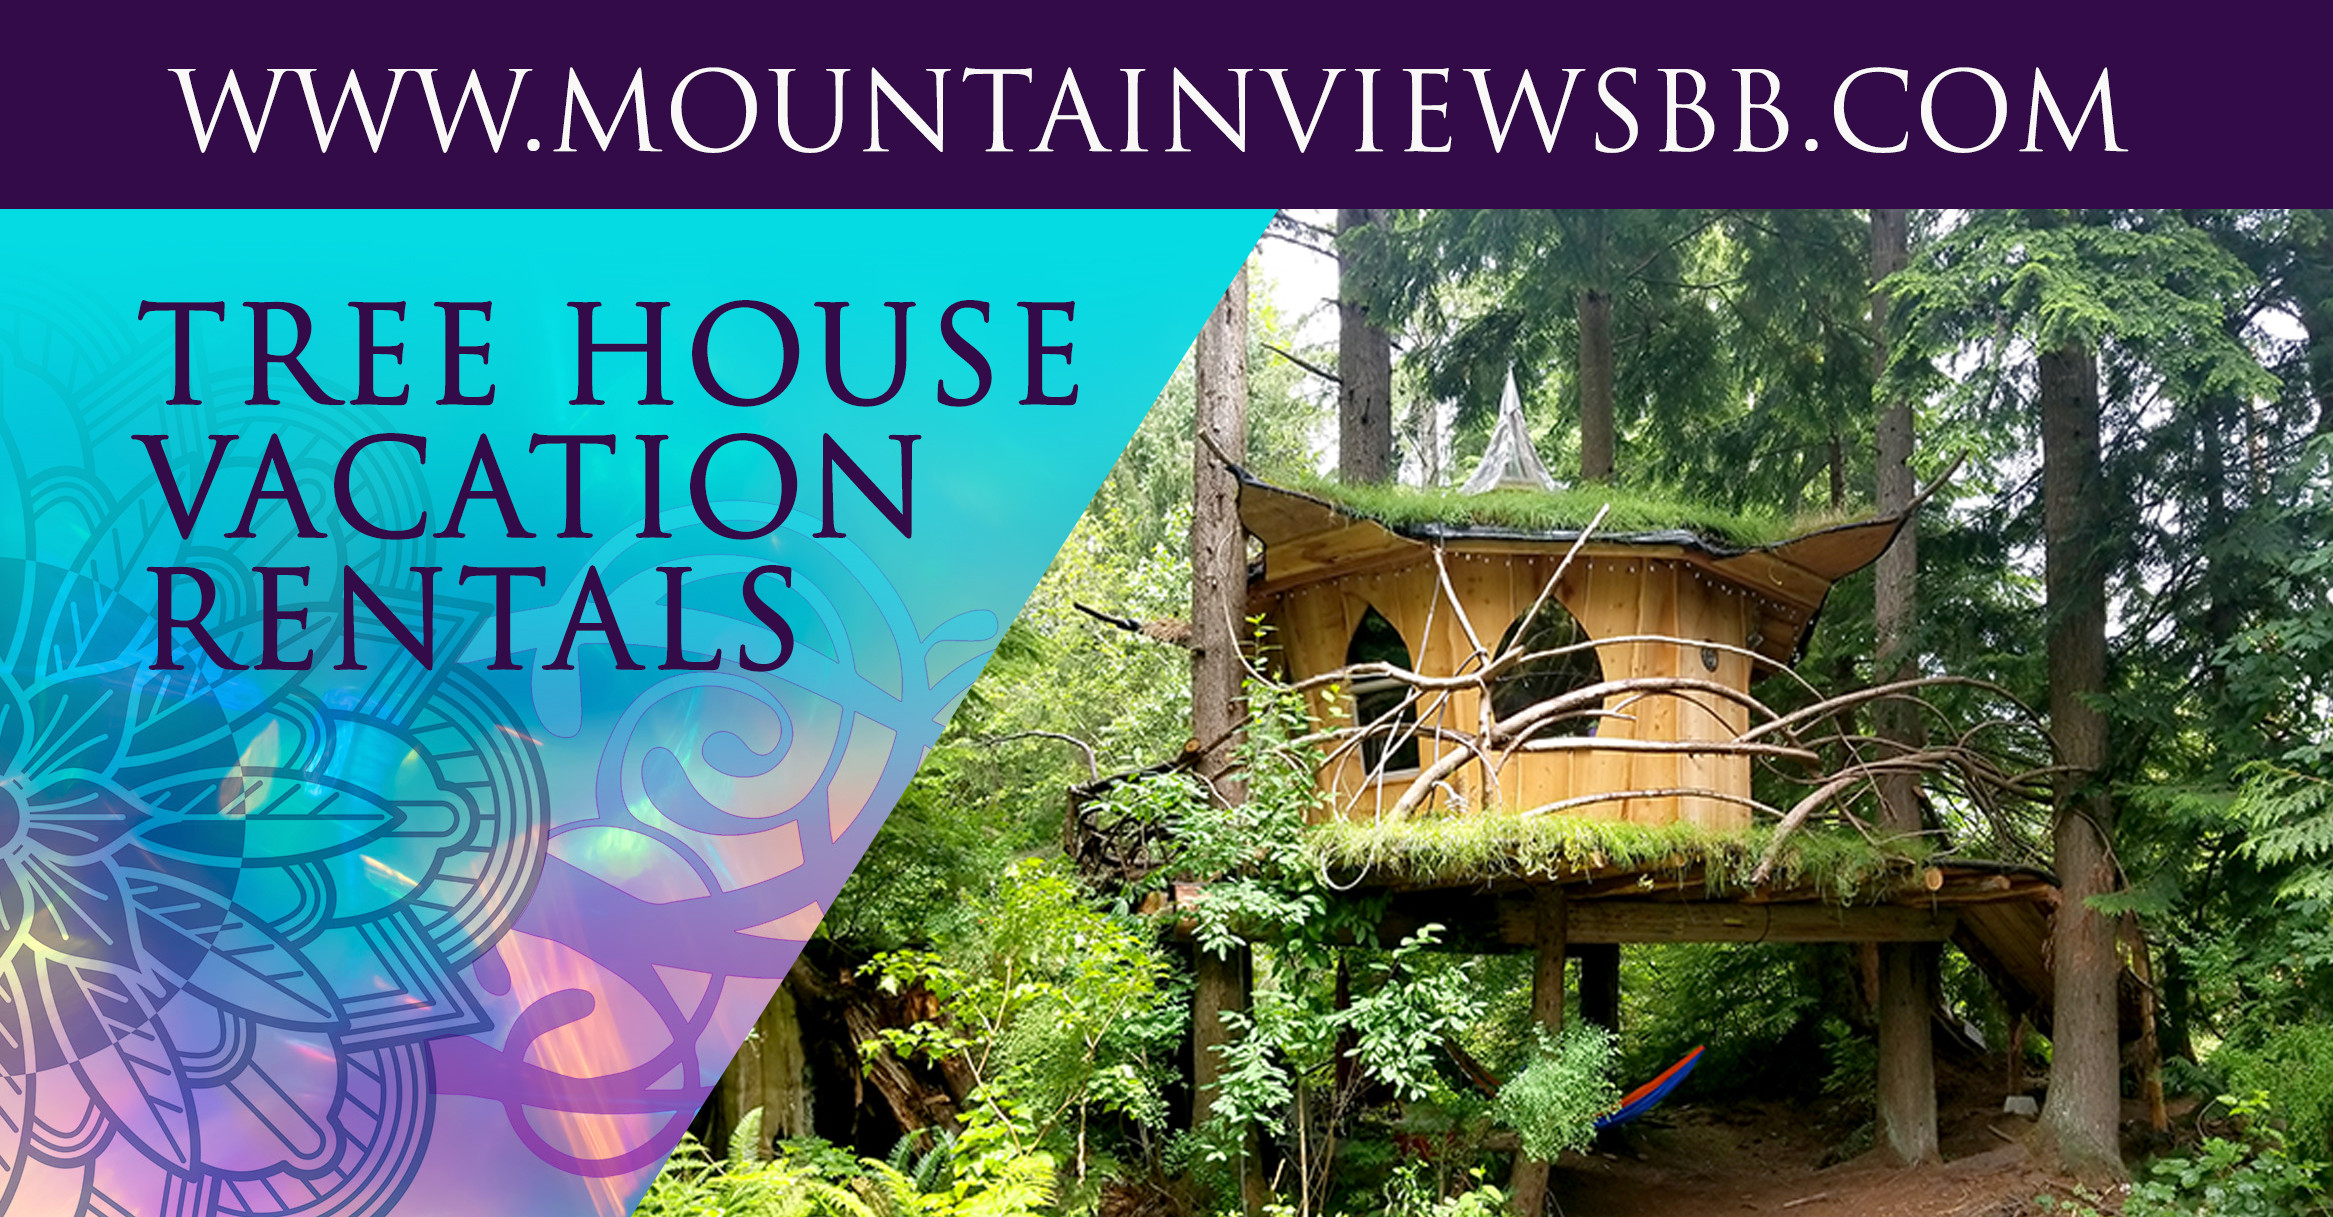 Cannabis Tourism Mountain Views Tree House Joint United States